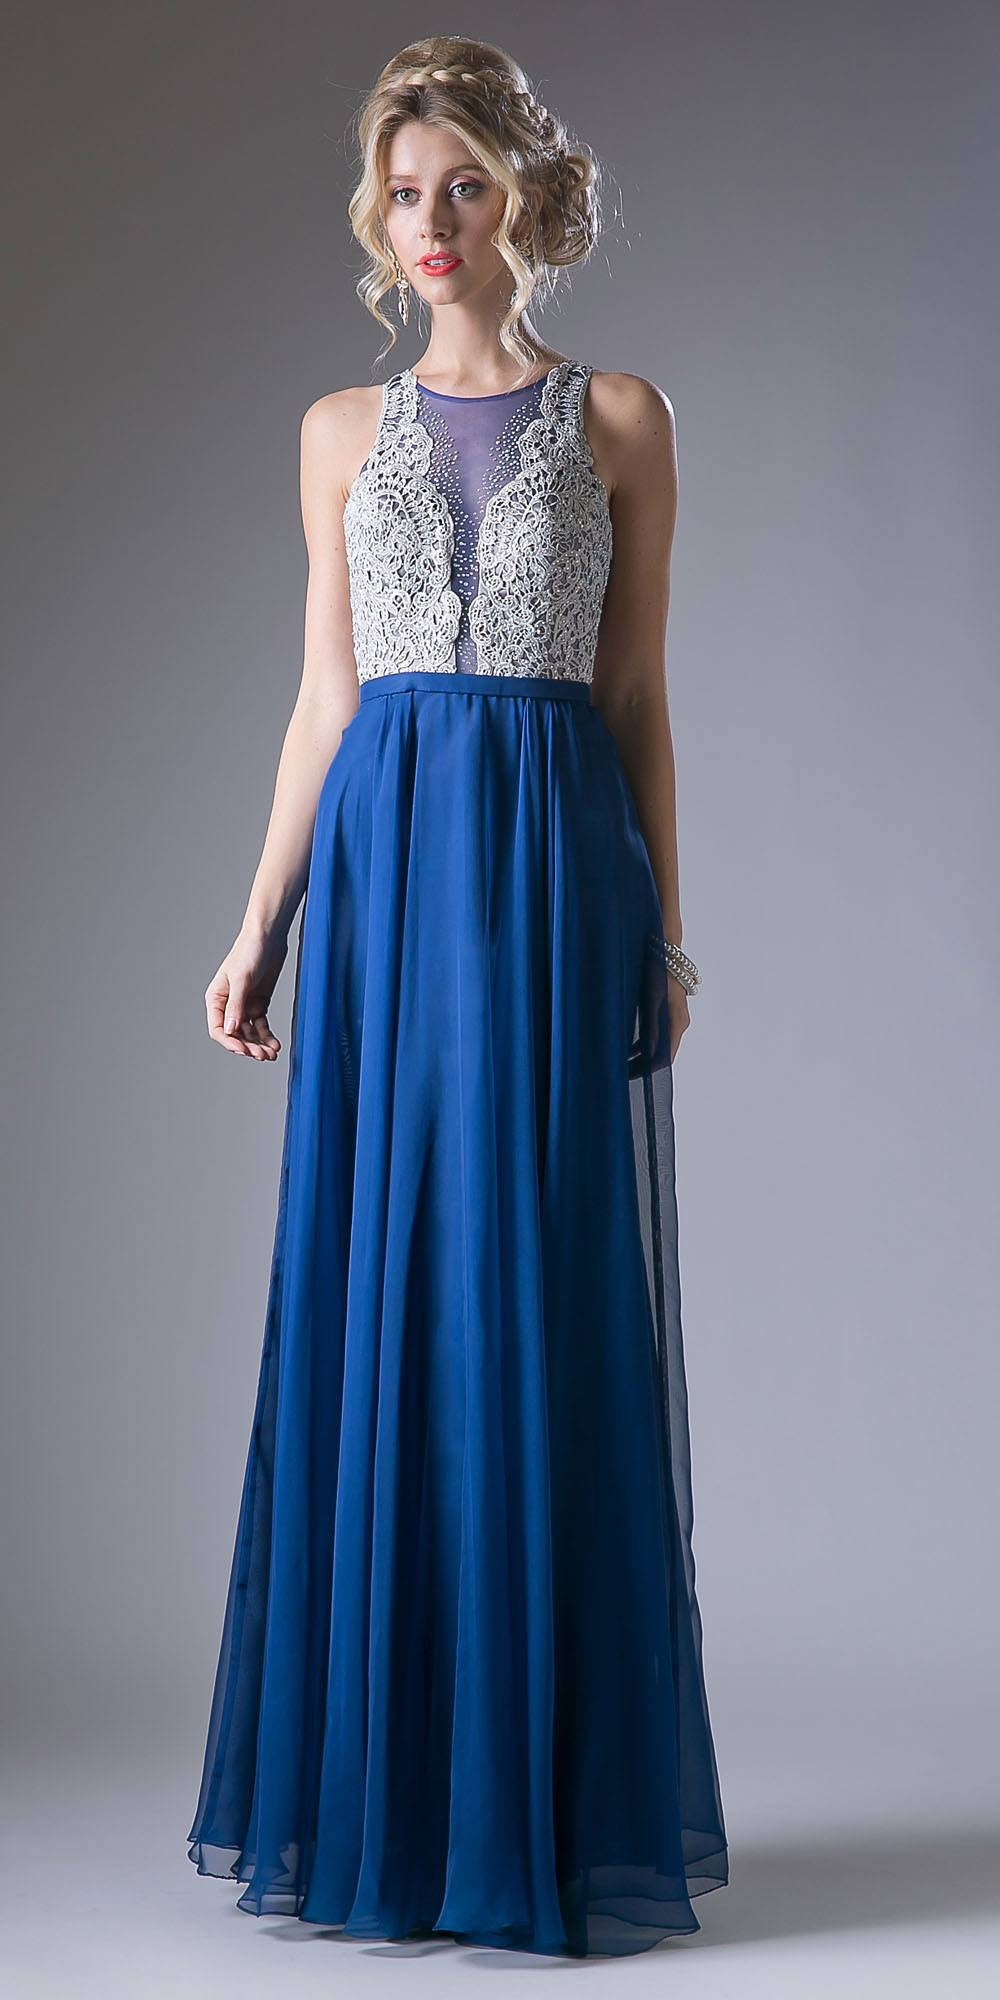 Long Chiffon Prom Gown With Embroidered Bodice Illusion Neck Navy Blue